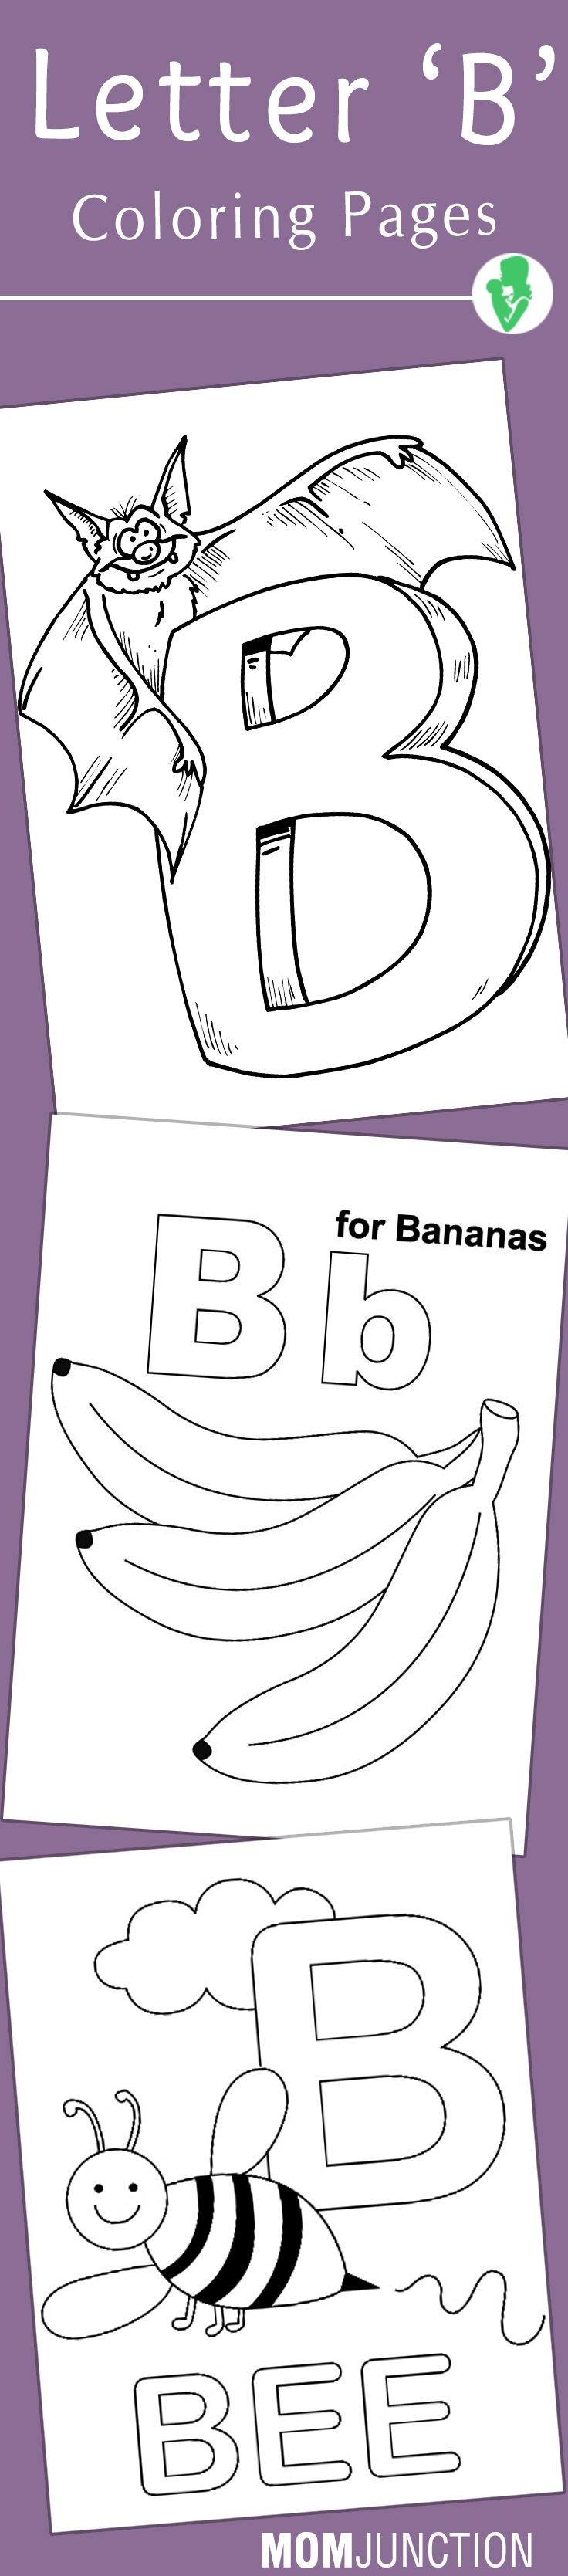 Letter b coloring pages for preschoolers - Top 10 Free Printable Letter B Coloring Pages Online